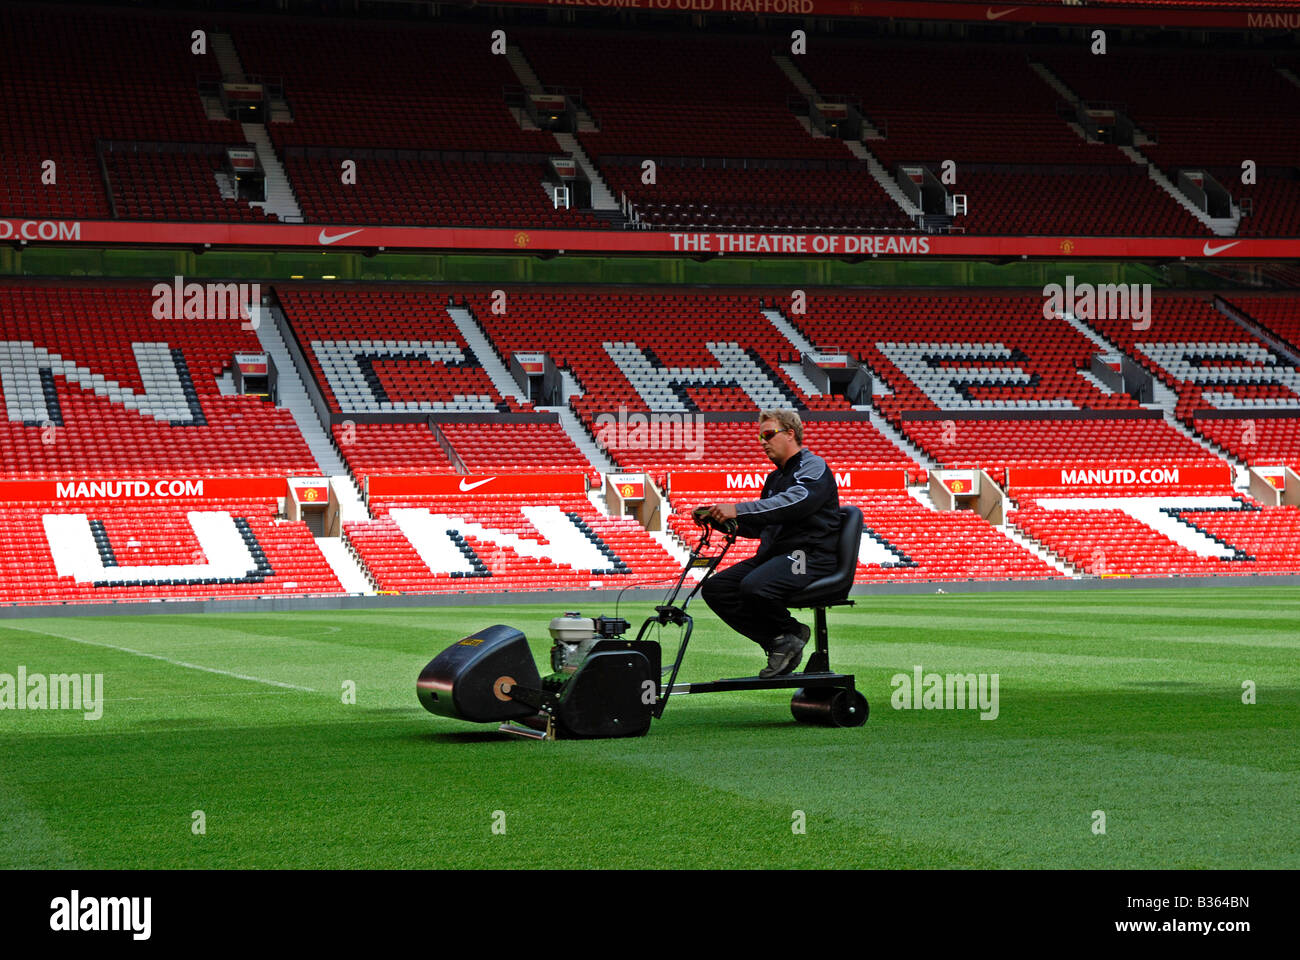 a groundsman cutting the grass at old trafford home of manchester united football club, manchester, england,uk - Stock Image